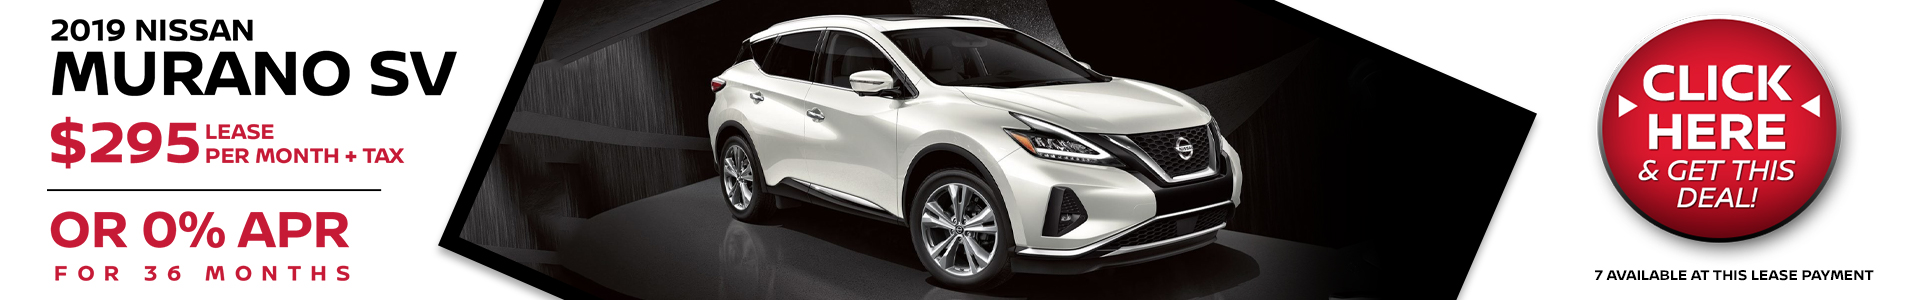 Mossy Nissan - Nissan Murano $295 Lease